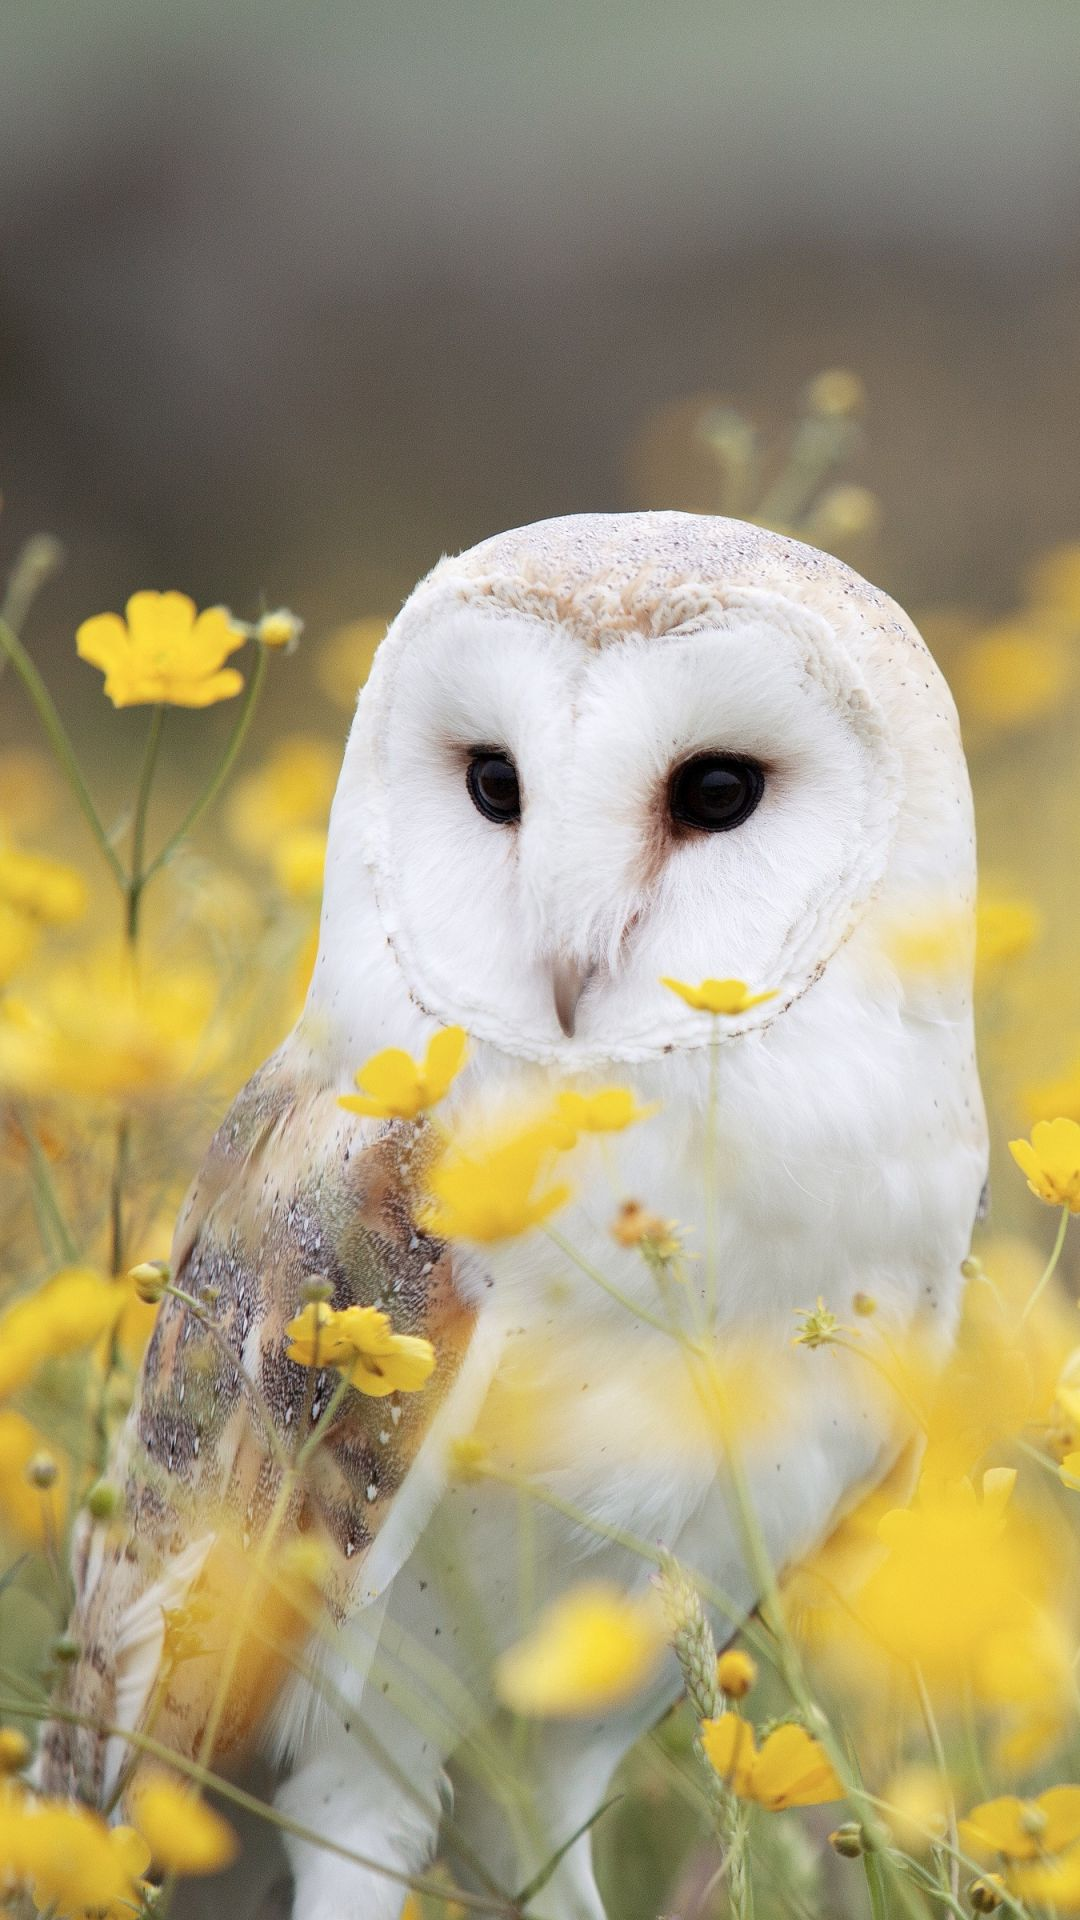 Owl iphone - Android, iPhone, Desktop HD Backgrounds / Wallpapers (1080p, 4k) HD Wallpapers (Desktop Background / Android / iPhone) (1080p, 4k)